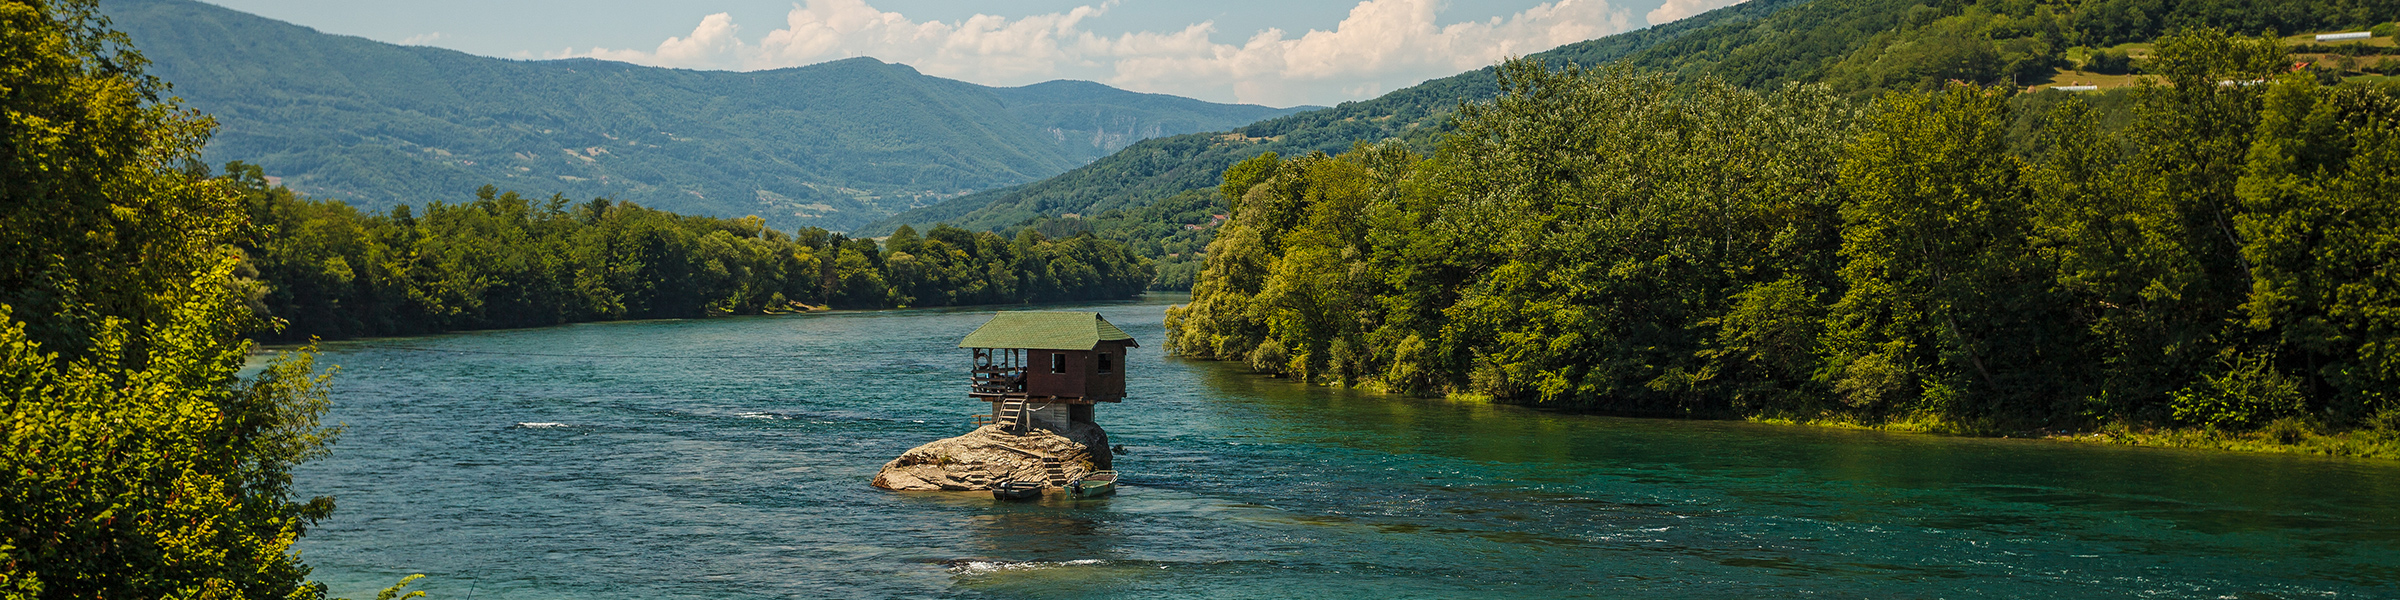 Serbia Tara National Park Drina River